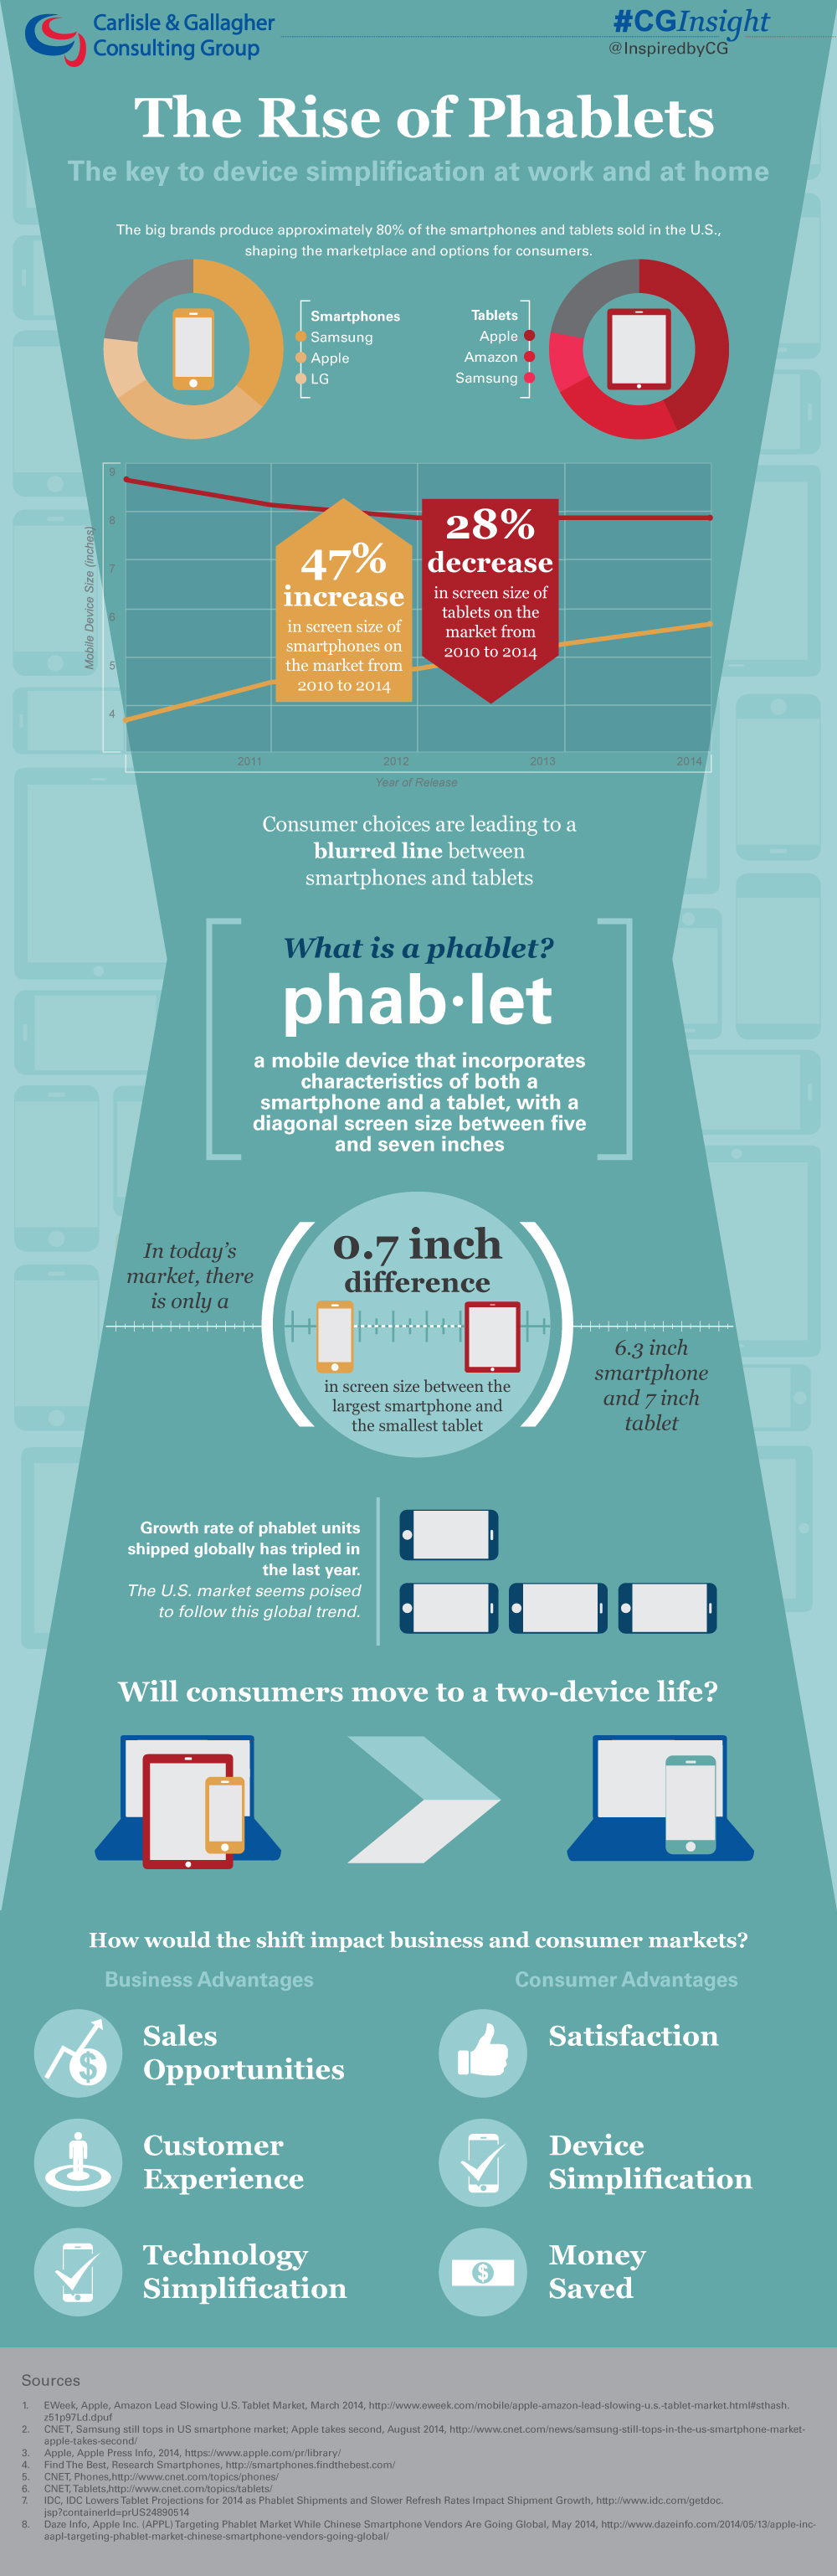 Infographic from Carlisle & Gallagher Consulting Group depicting the convergence of mobile device size, tablet vs. smartphone, and the rise of the phablet in the U.S. market. (Graphic: Business Wire)